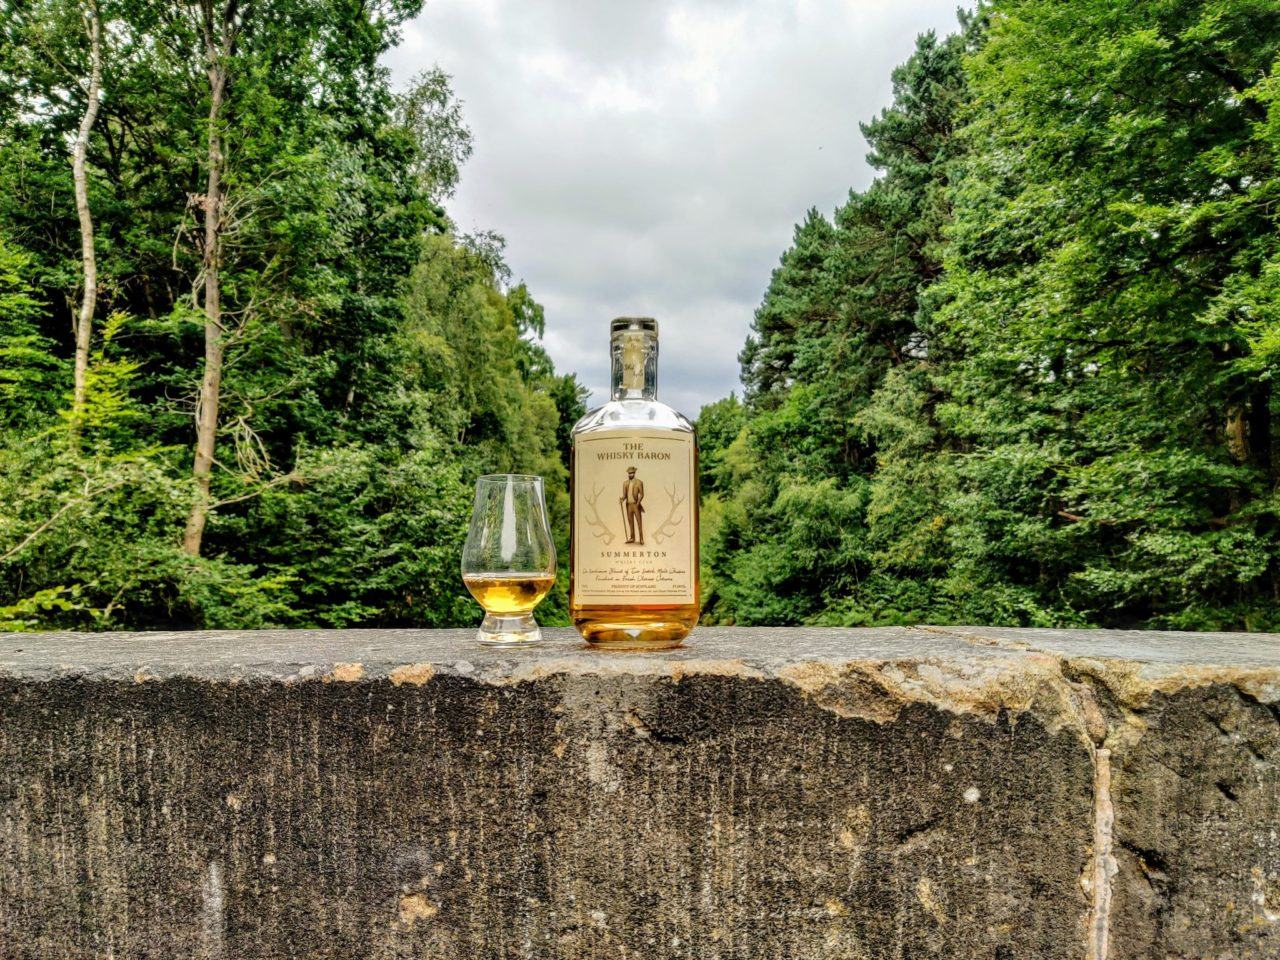 #SUMMERTONWHISKYSHOTS WINNERS – THE WHISKY BARON, Summerton Whisky Club - Excellence in Whisky